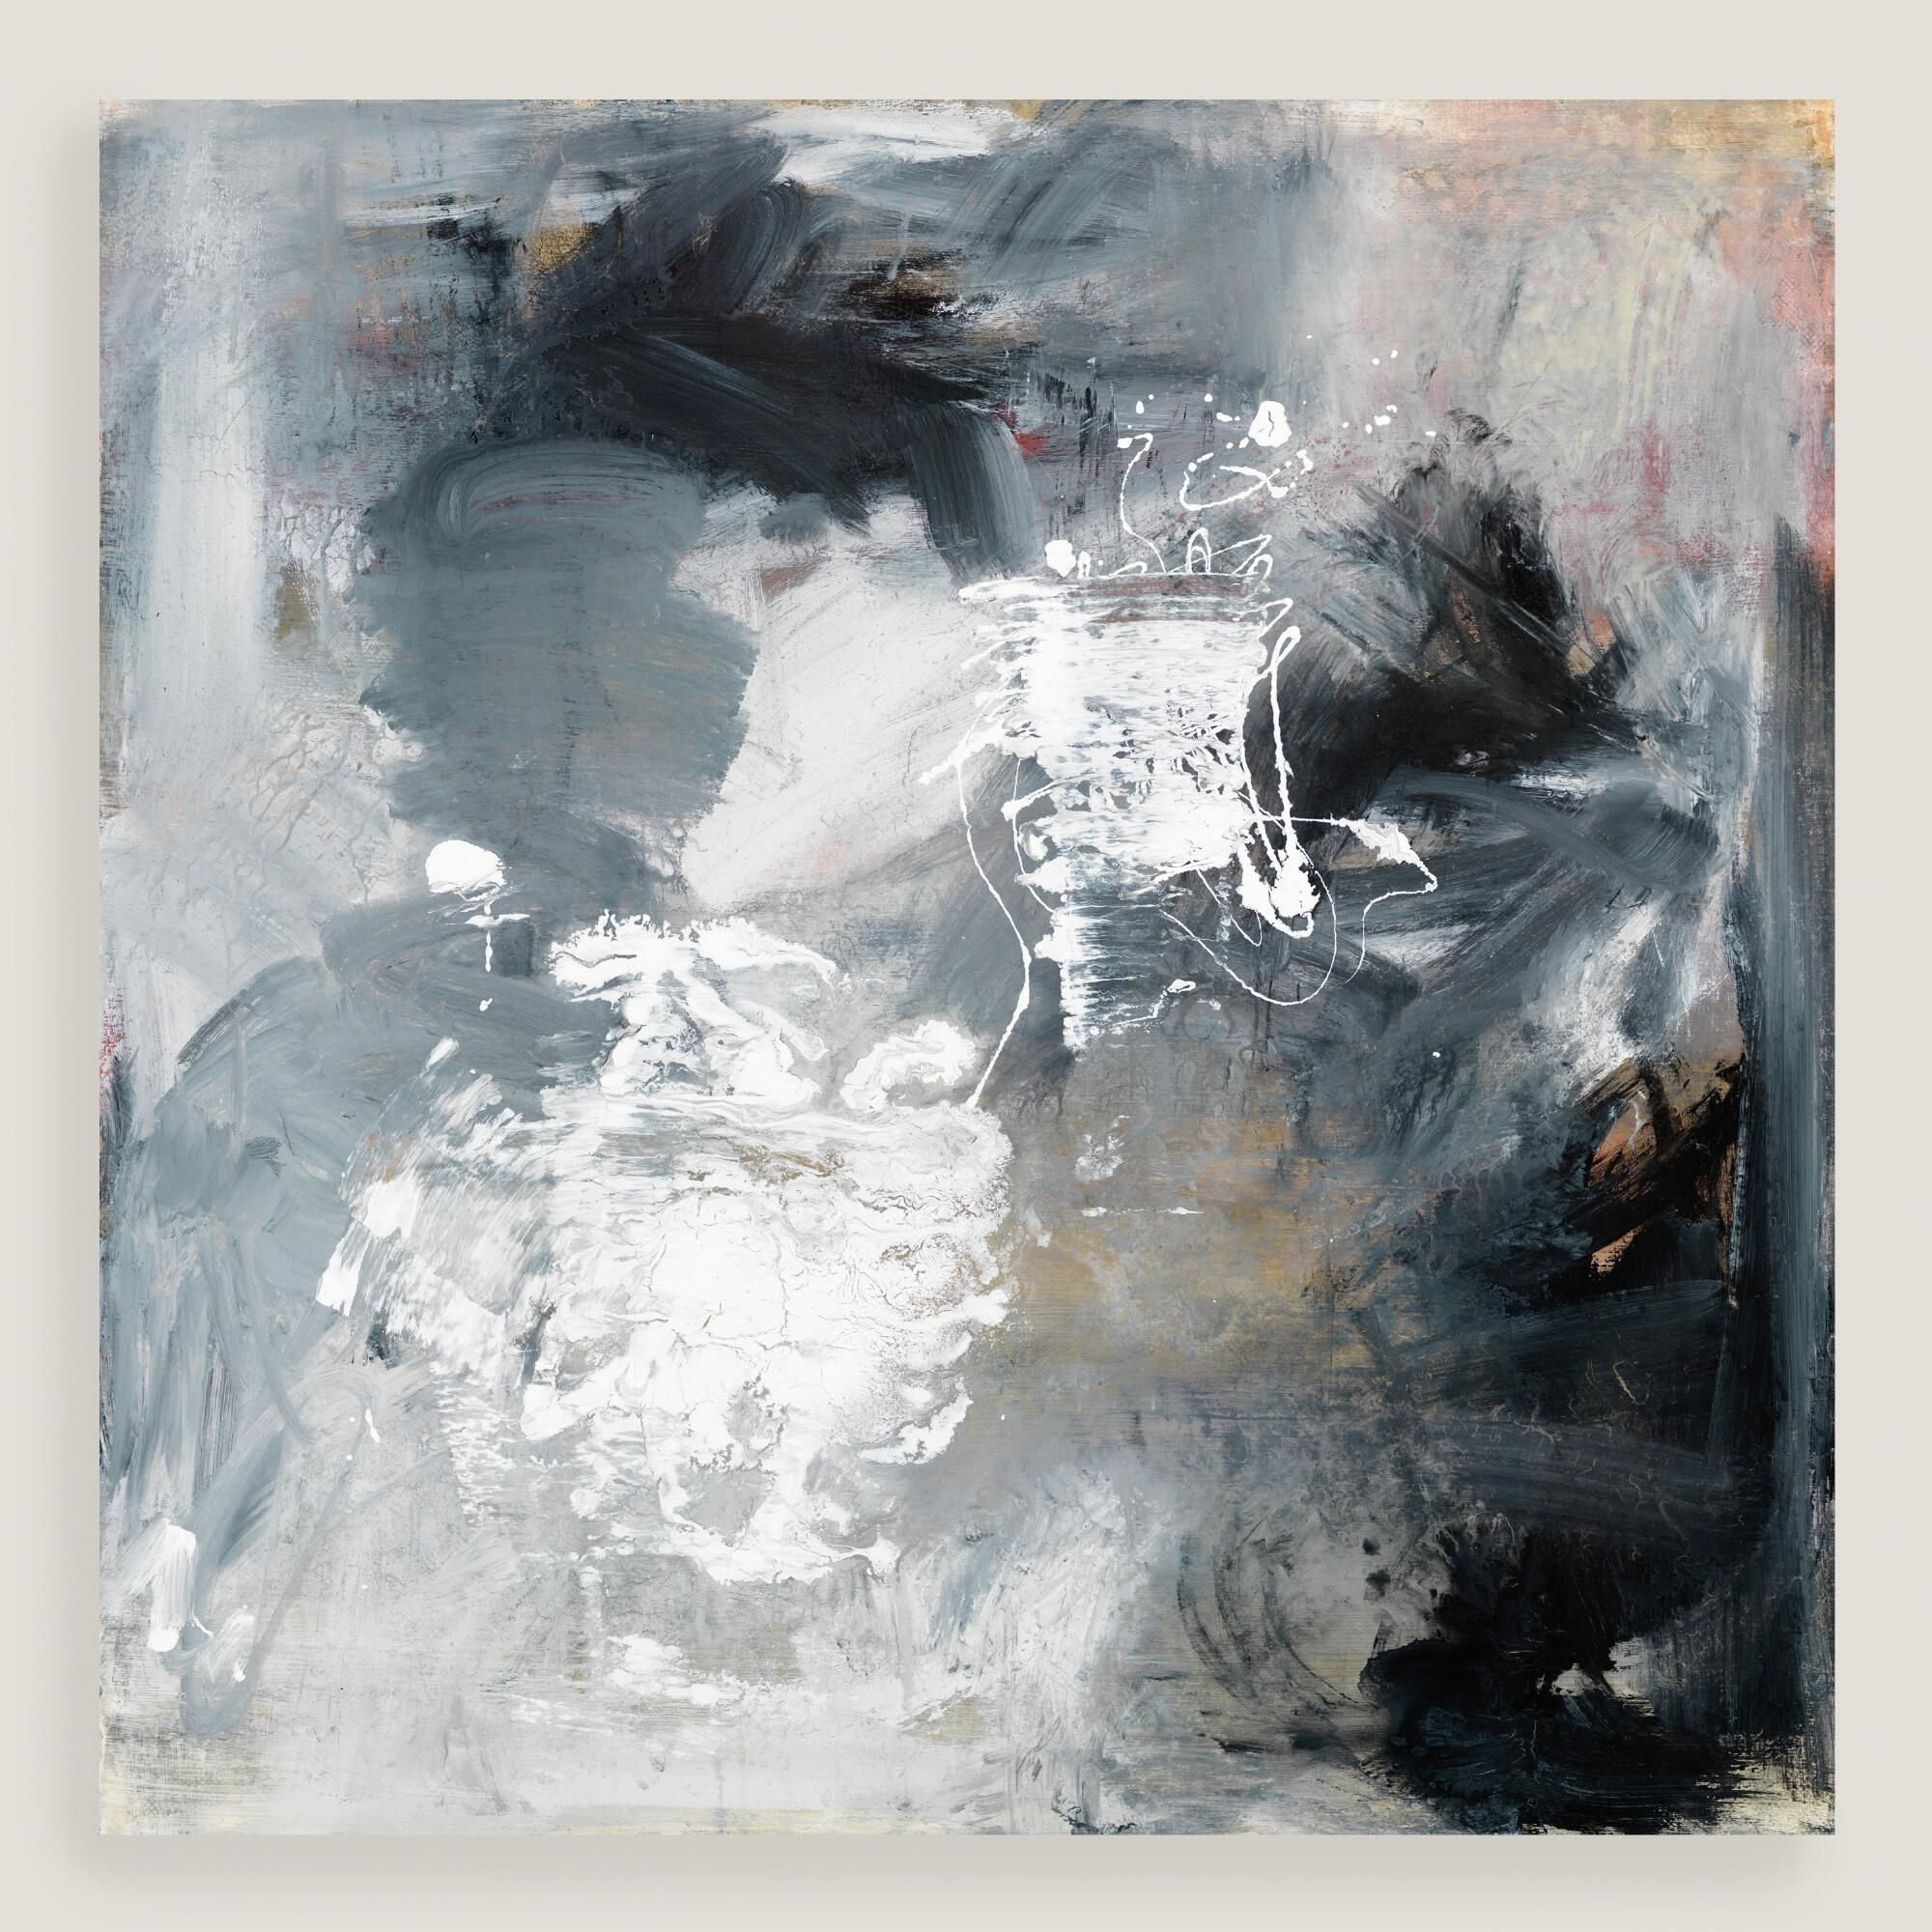 Black White And Gray Paintings Black White Gray And Amber Brush Strokes Comprise Elinor